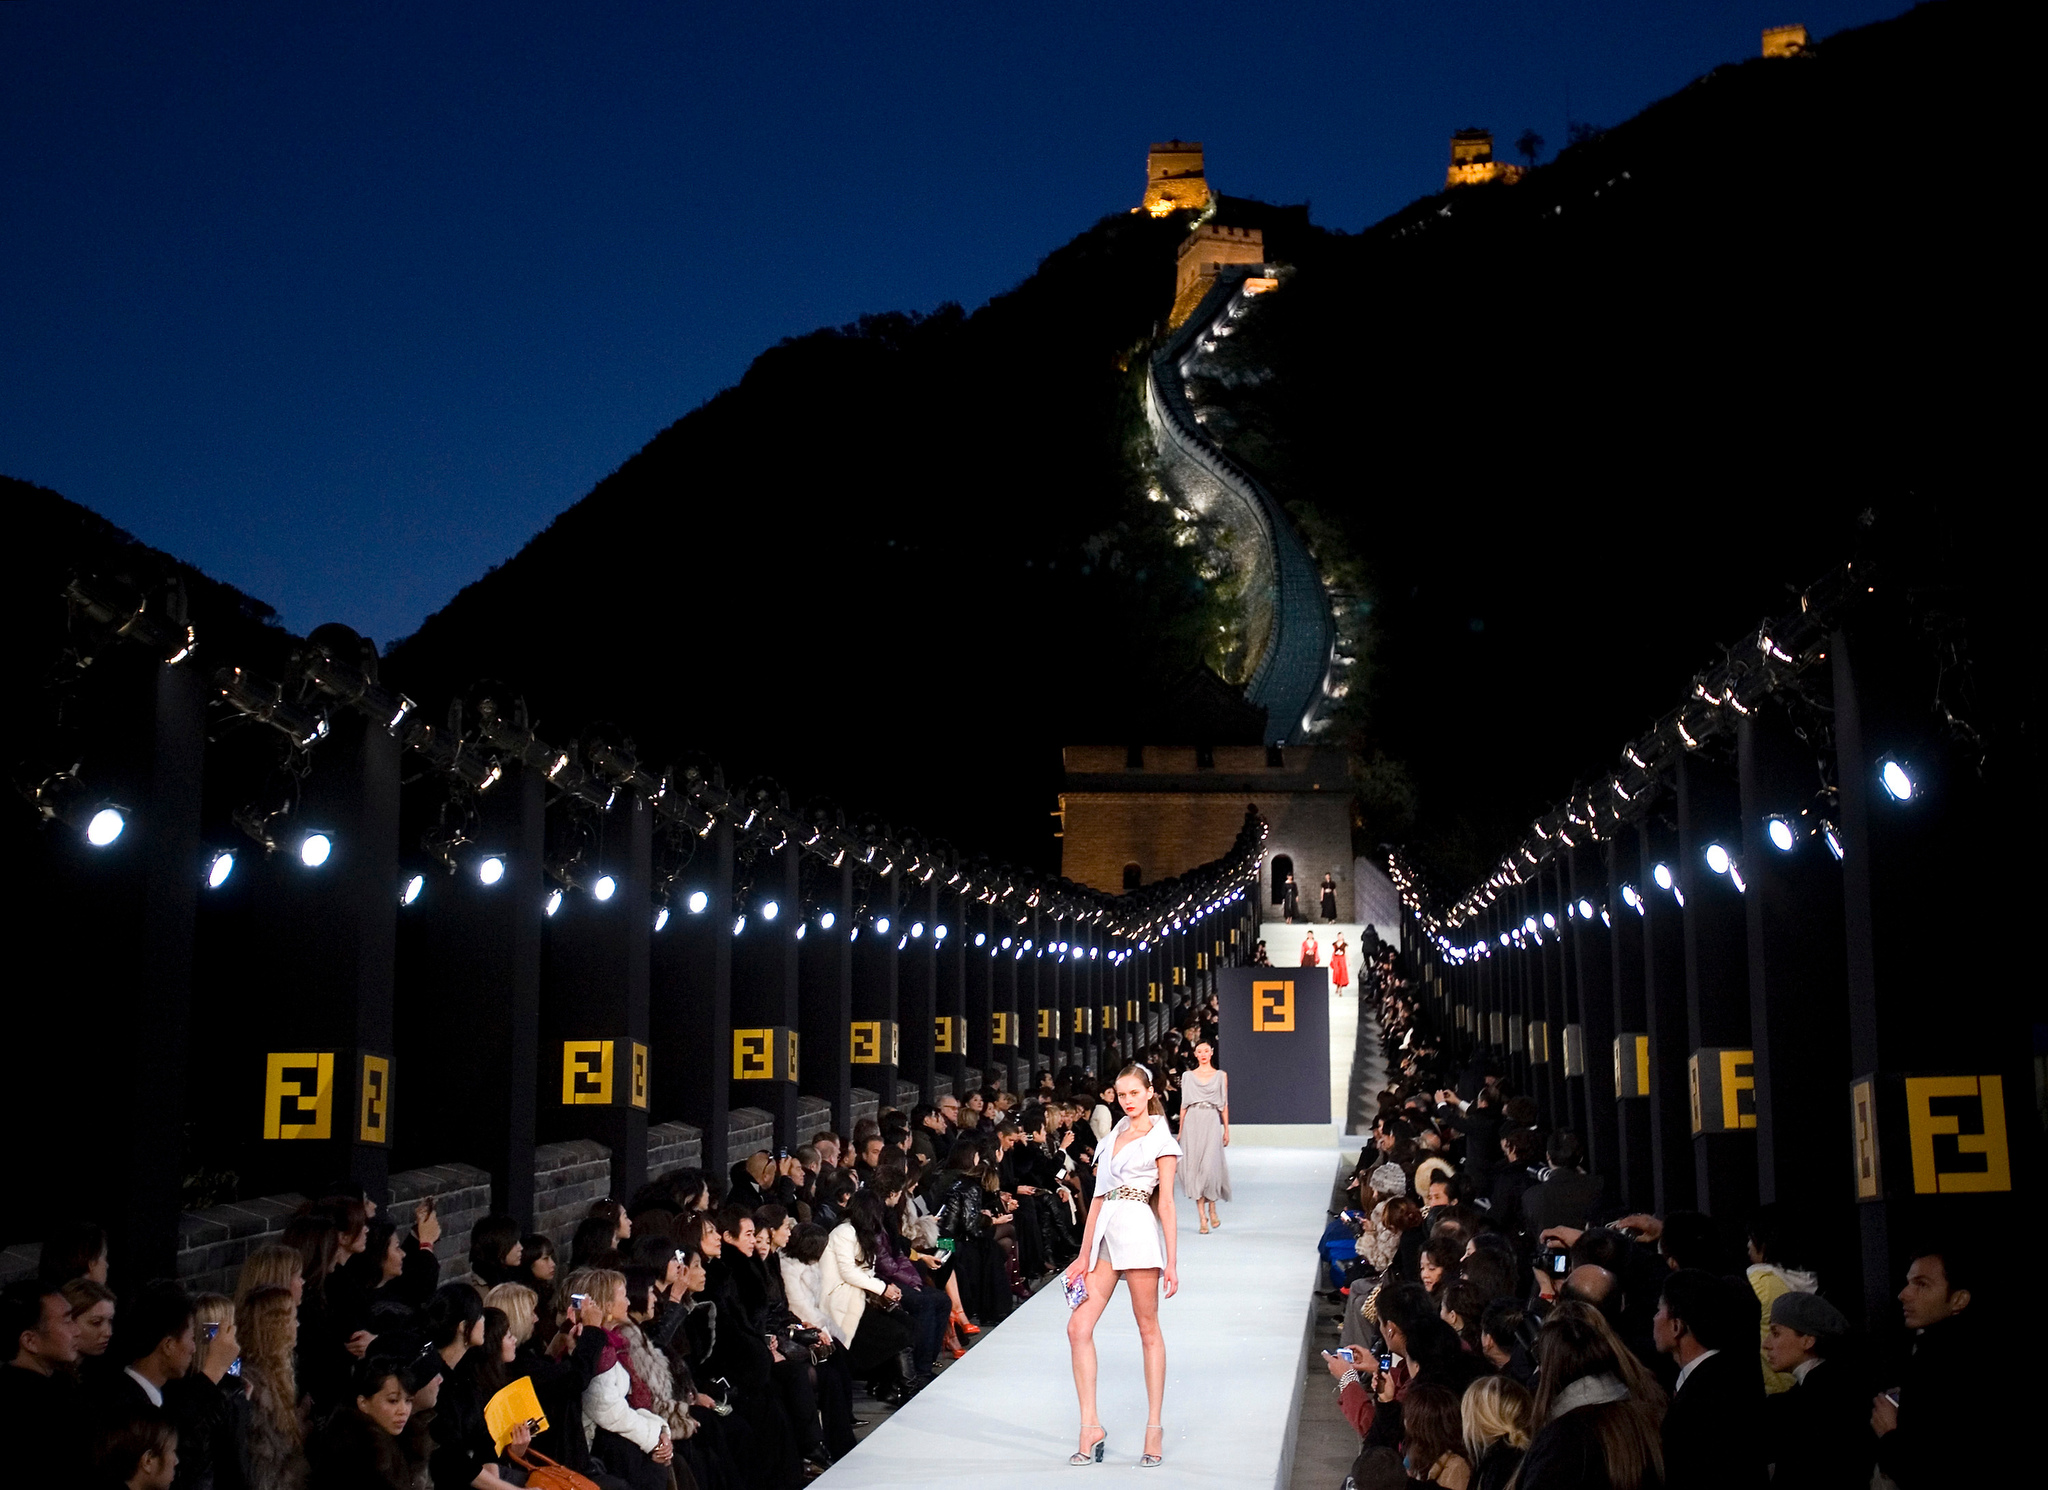 Fendi's 2007 extravaganza on the Great Wall of China set a high bar for the itinerant shows that would follow.